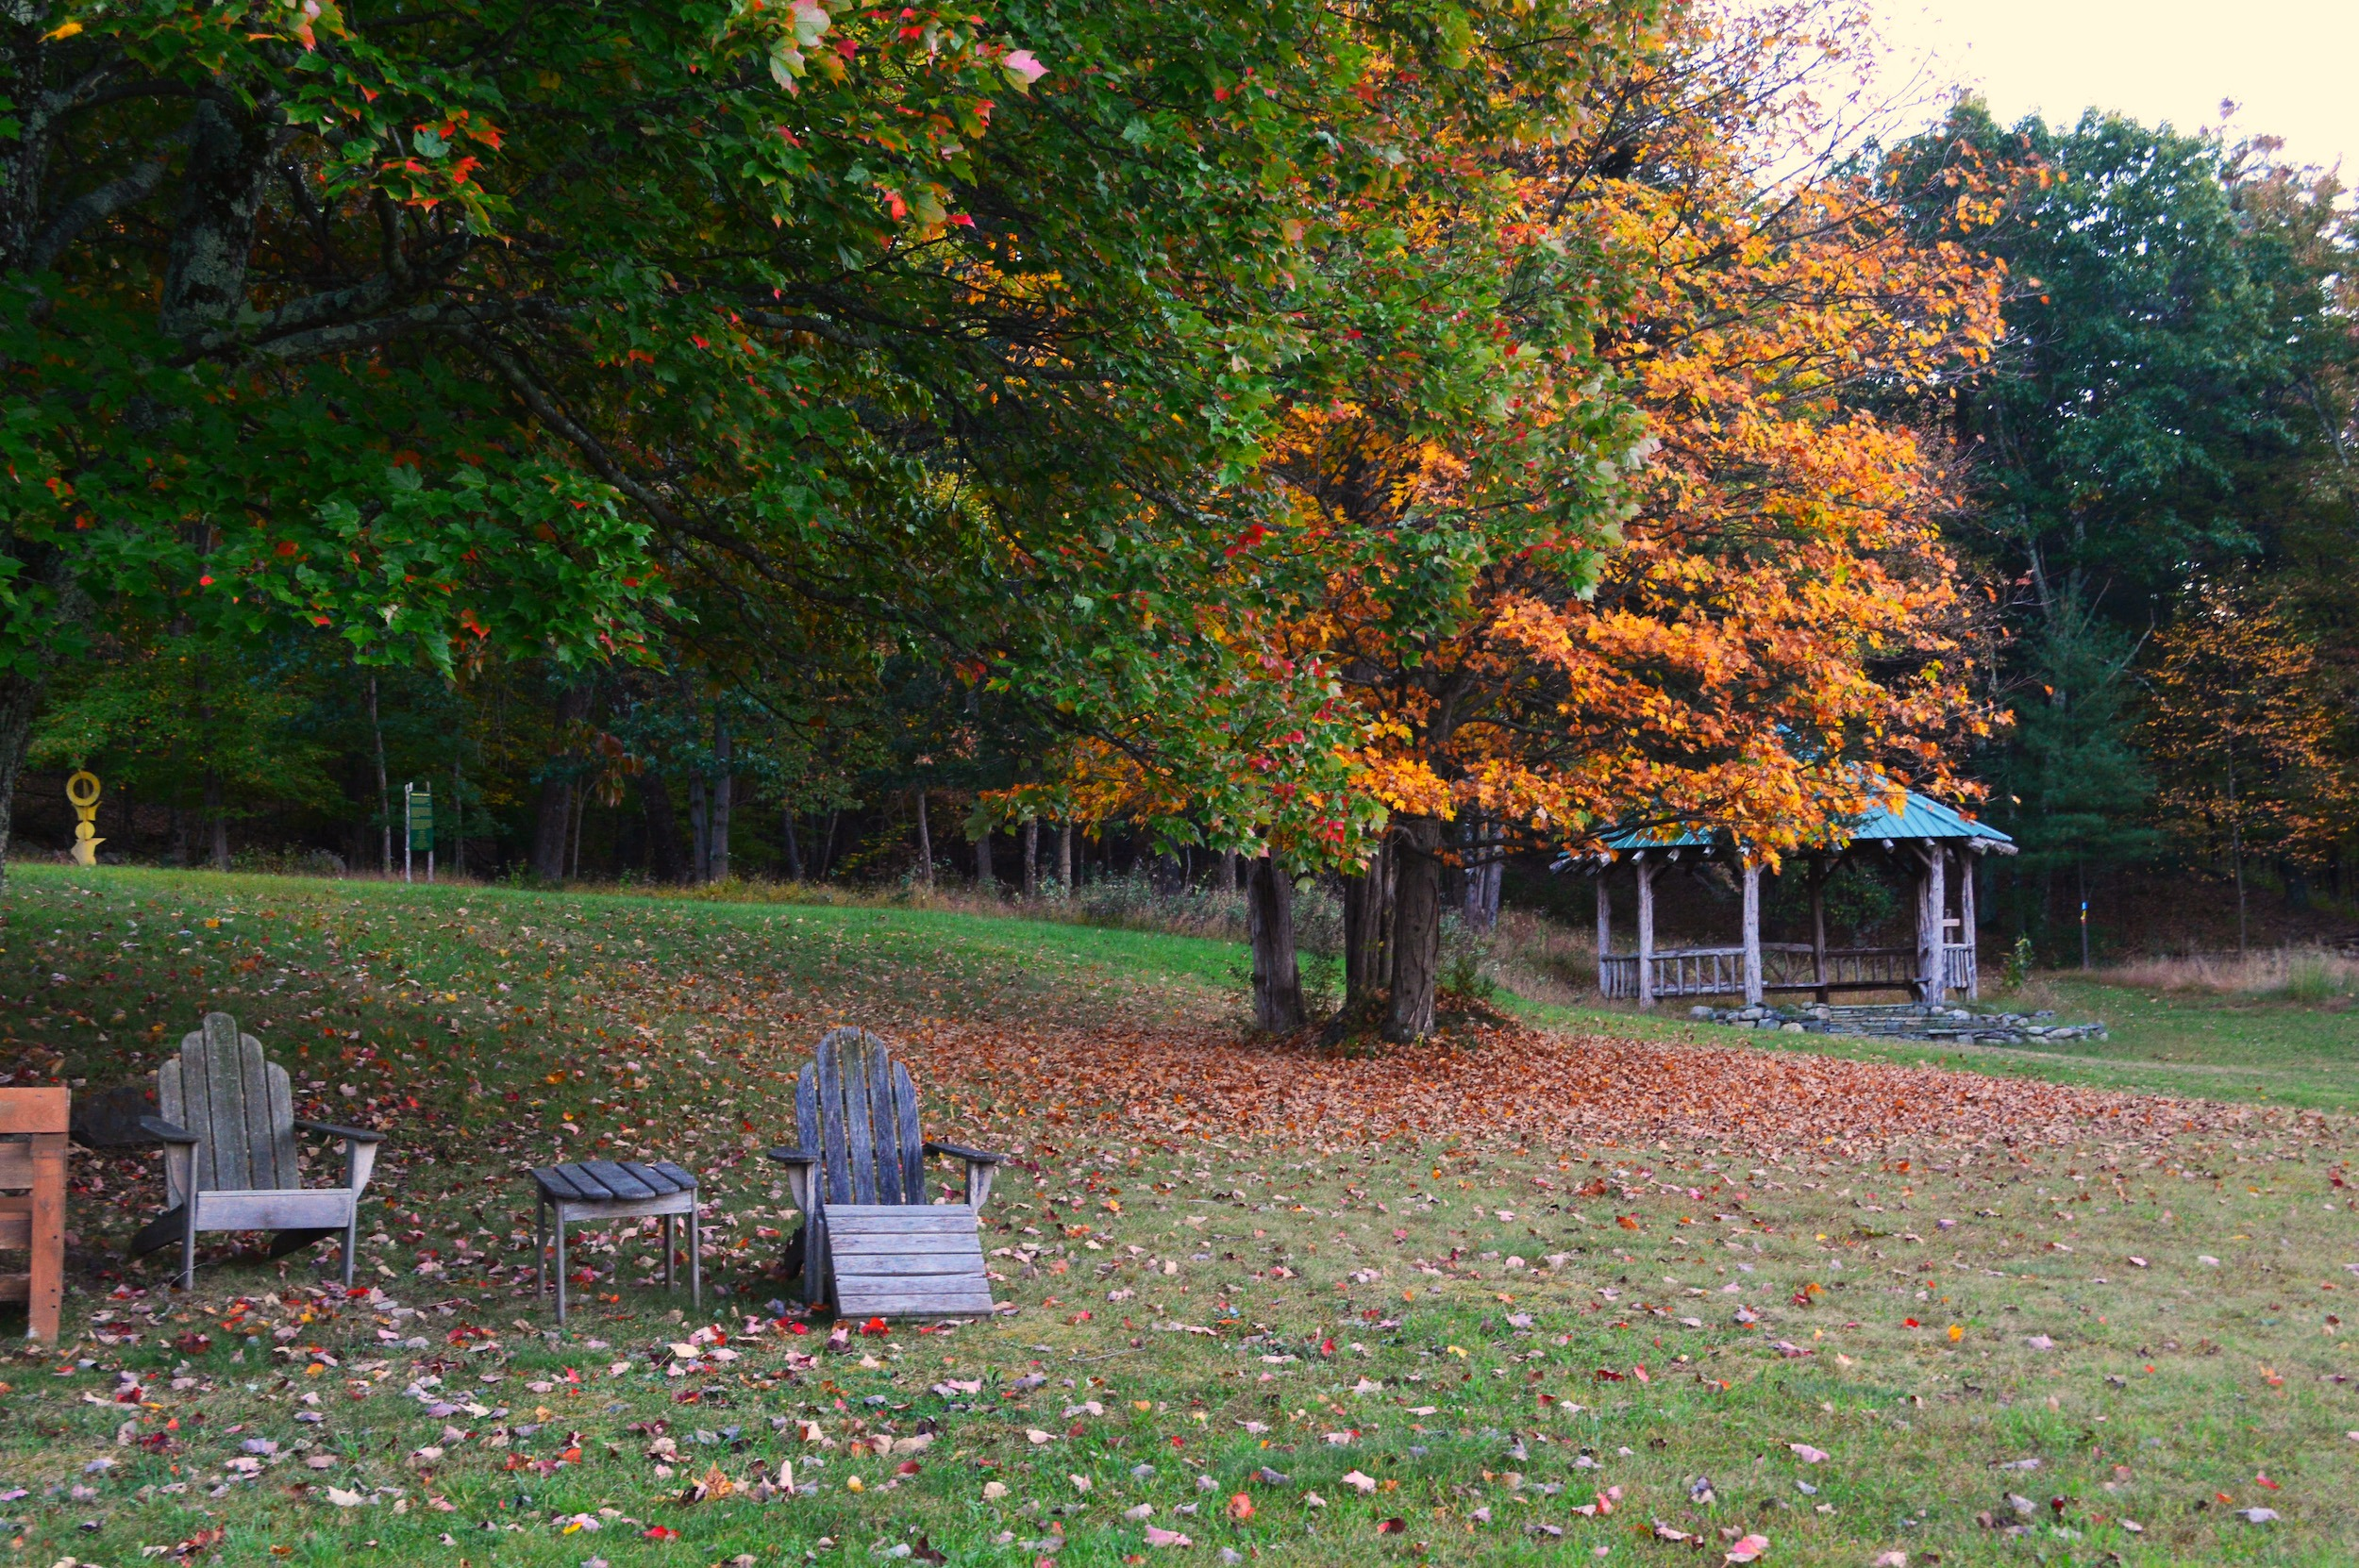 adirondack chairs & gazebo